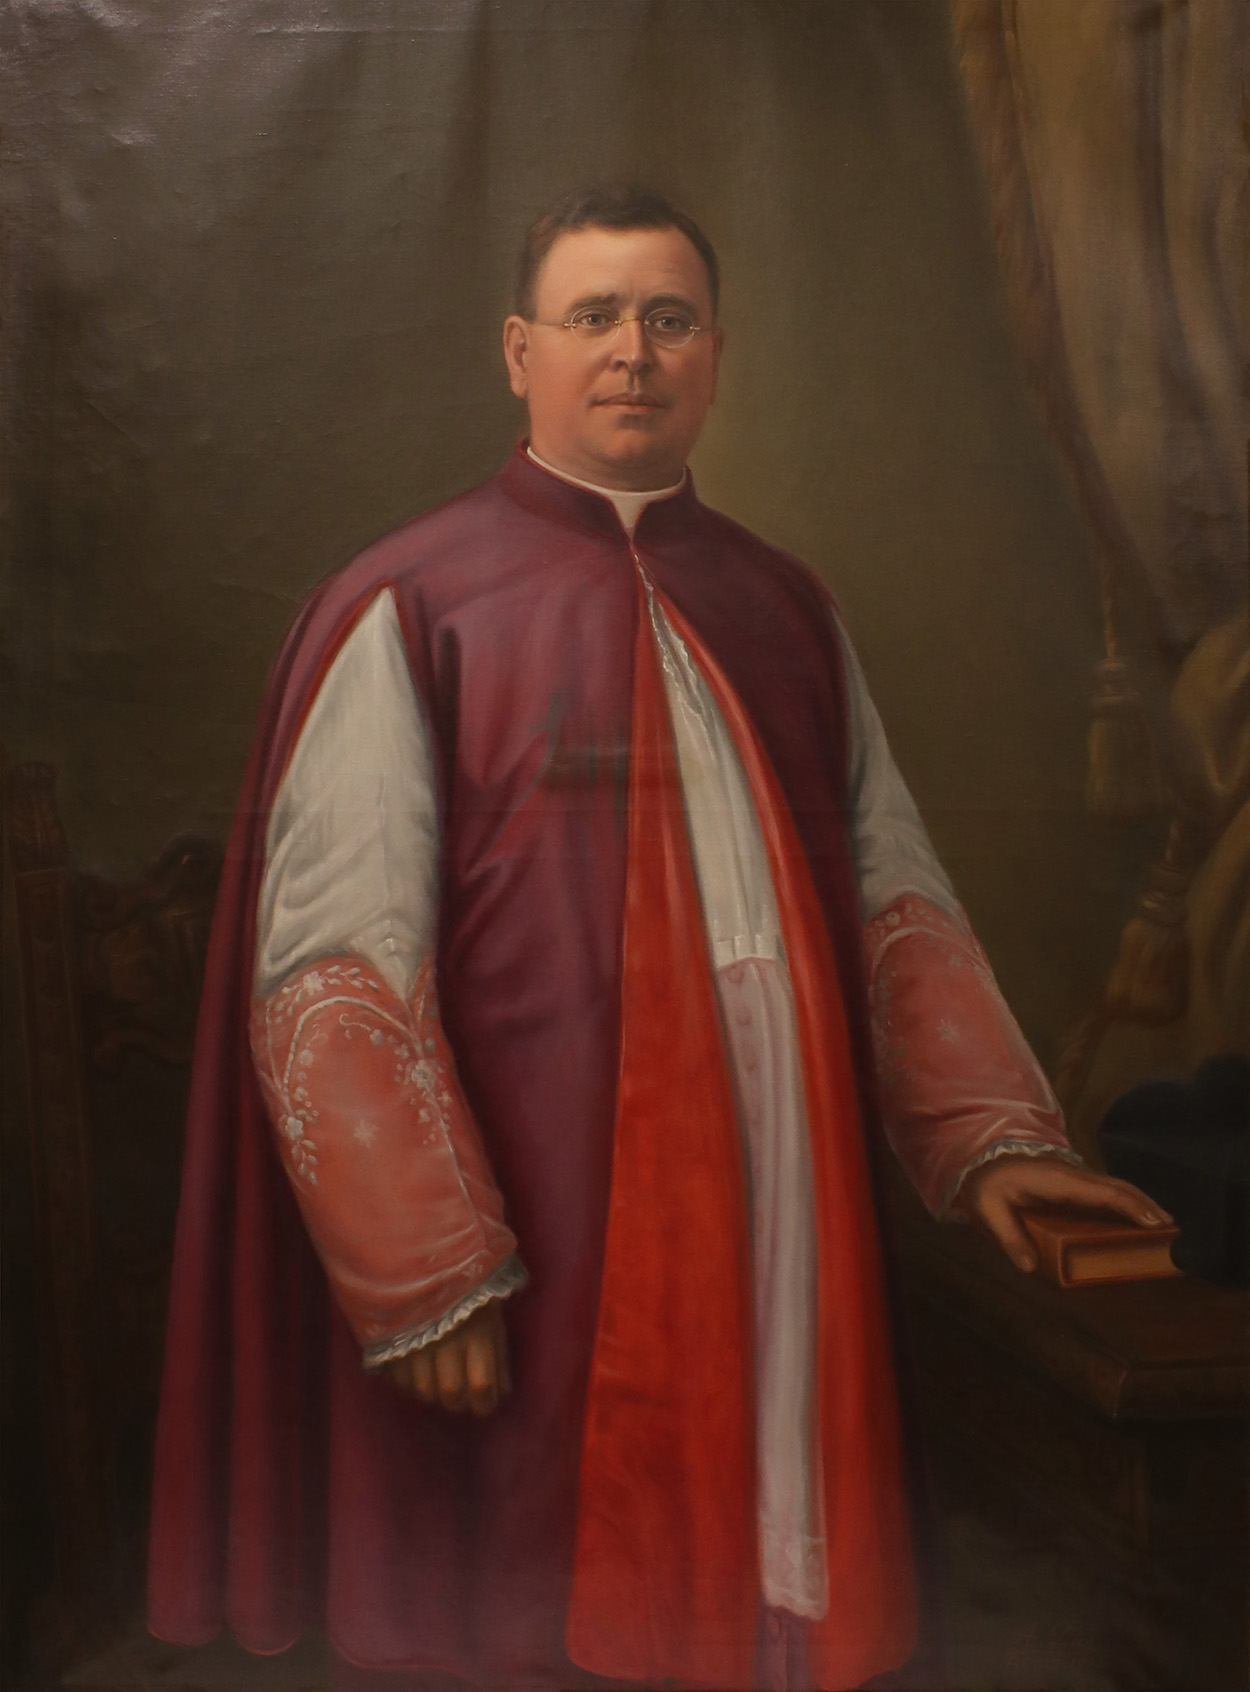 A. Dies, Portrait of Monsignor John A. Stafford, oil on canvas, 58 7/16 inches by 43 1/2 inches, 1904, 2020.16.0001, Seton Hall University Permanent Collection